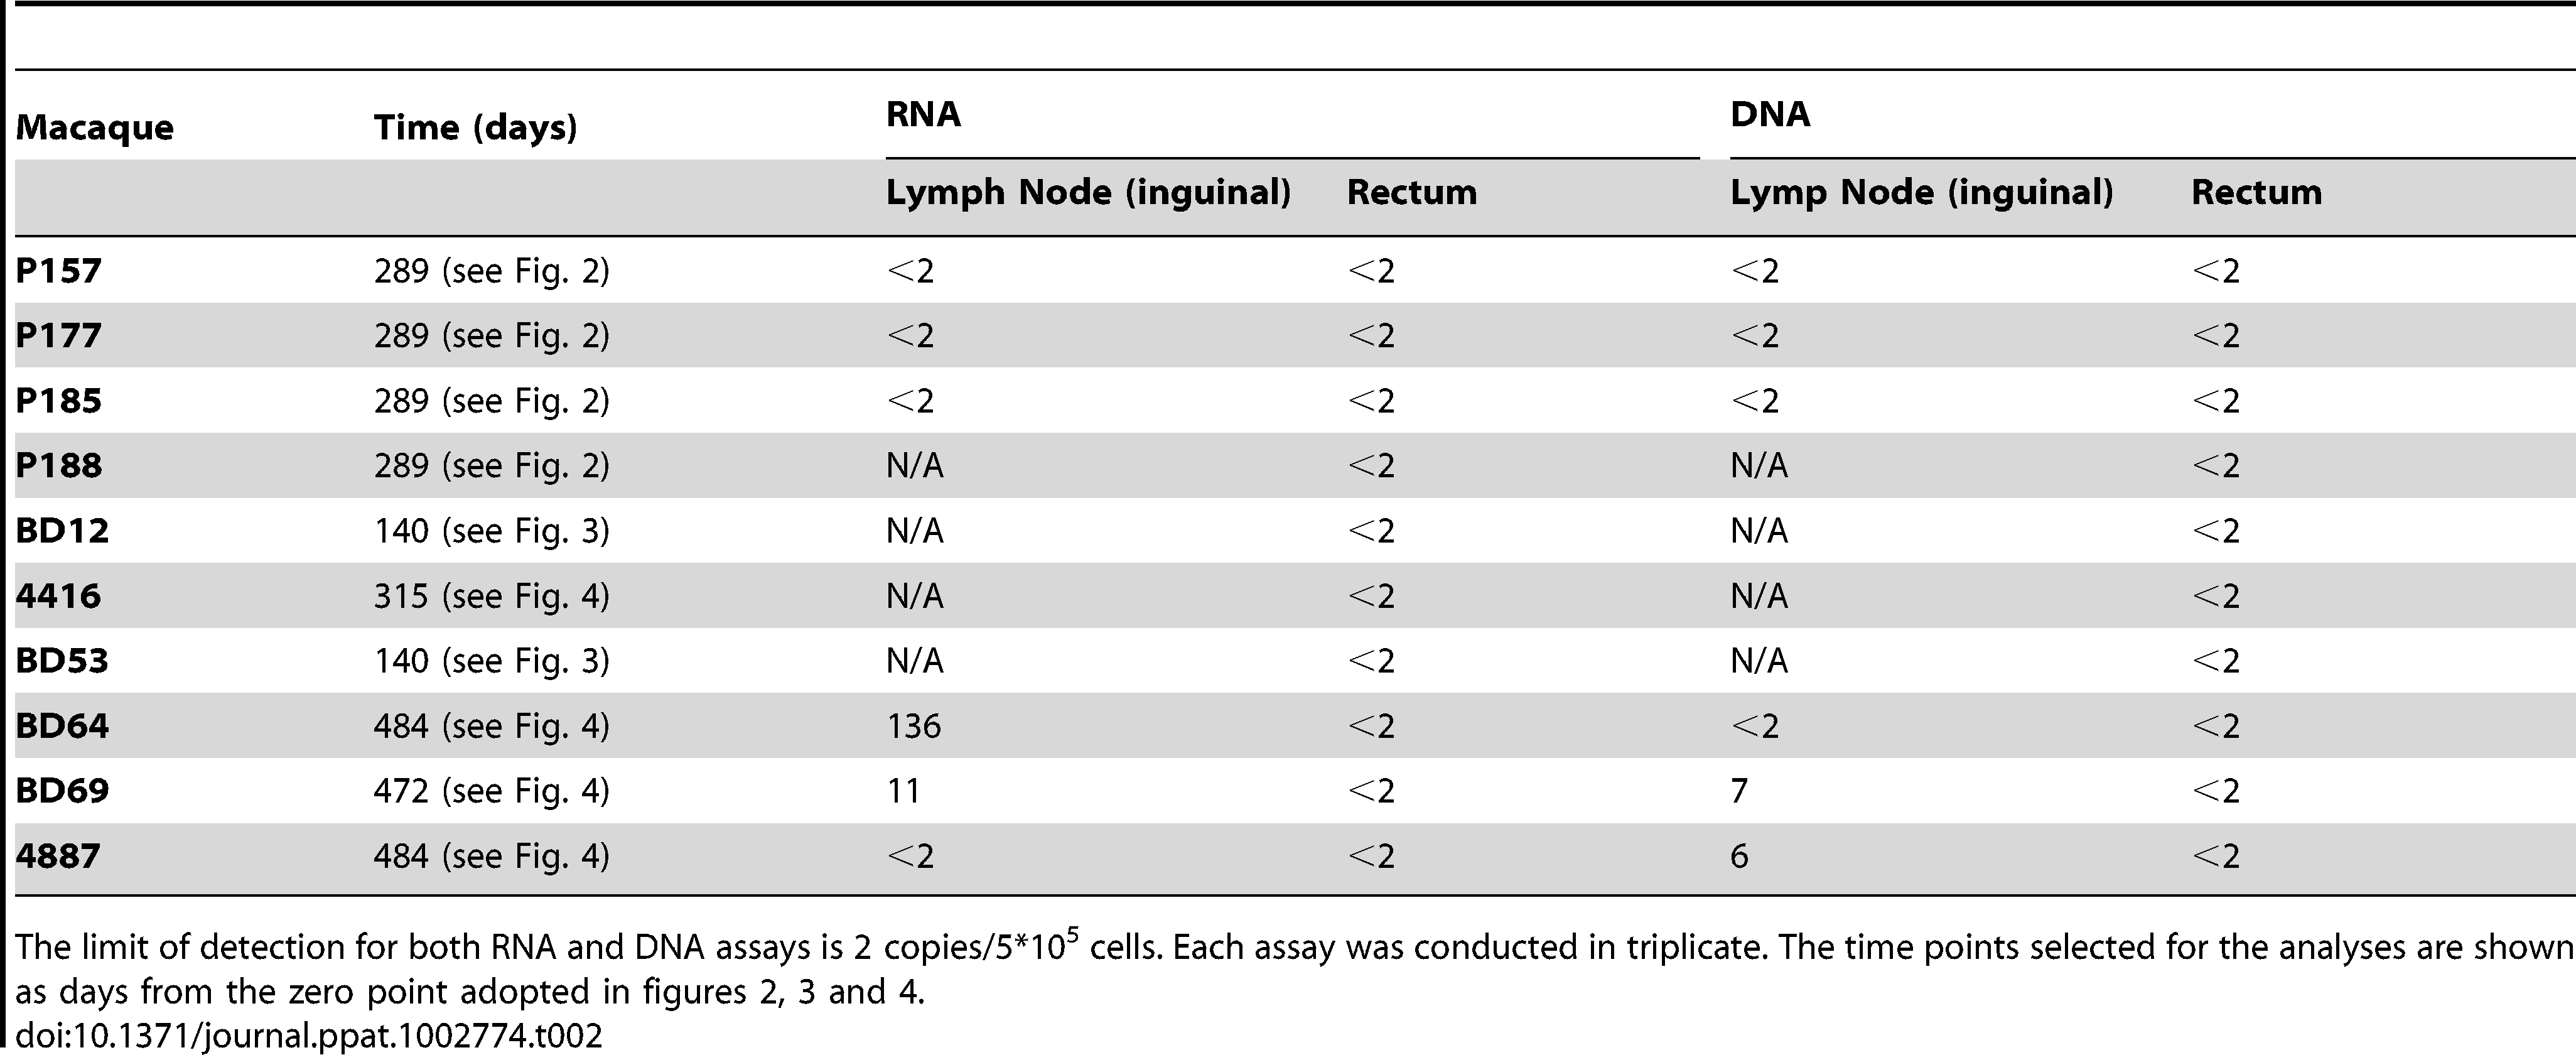 Cell associated RNA and DNA in lymph nodes and rectum.